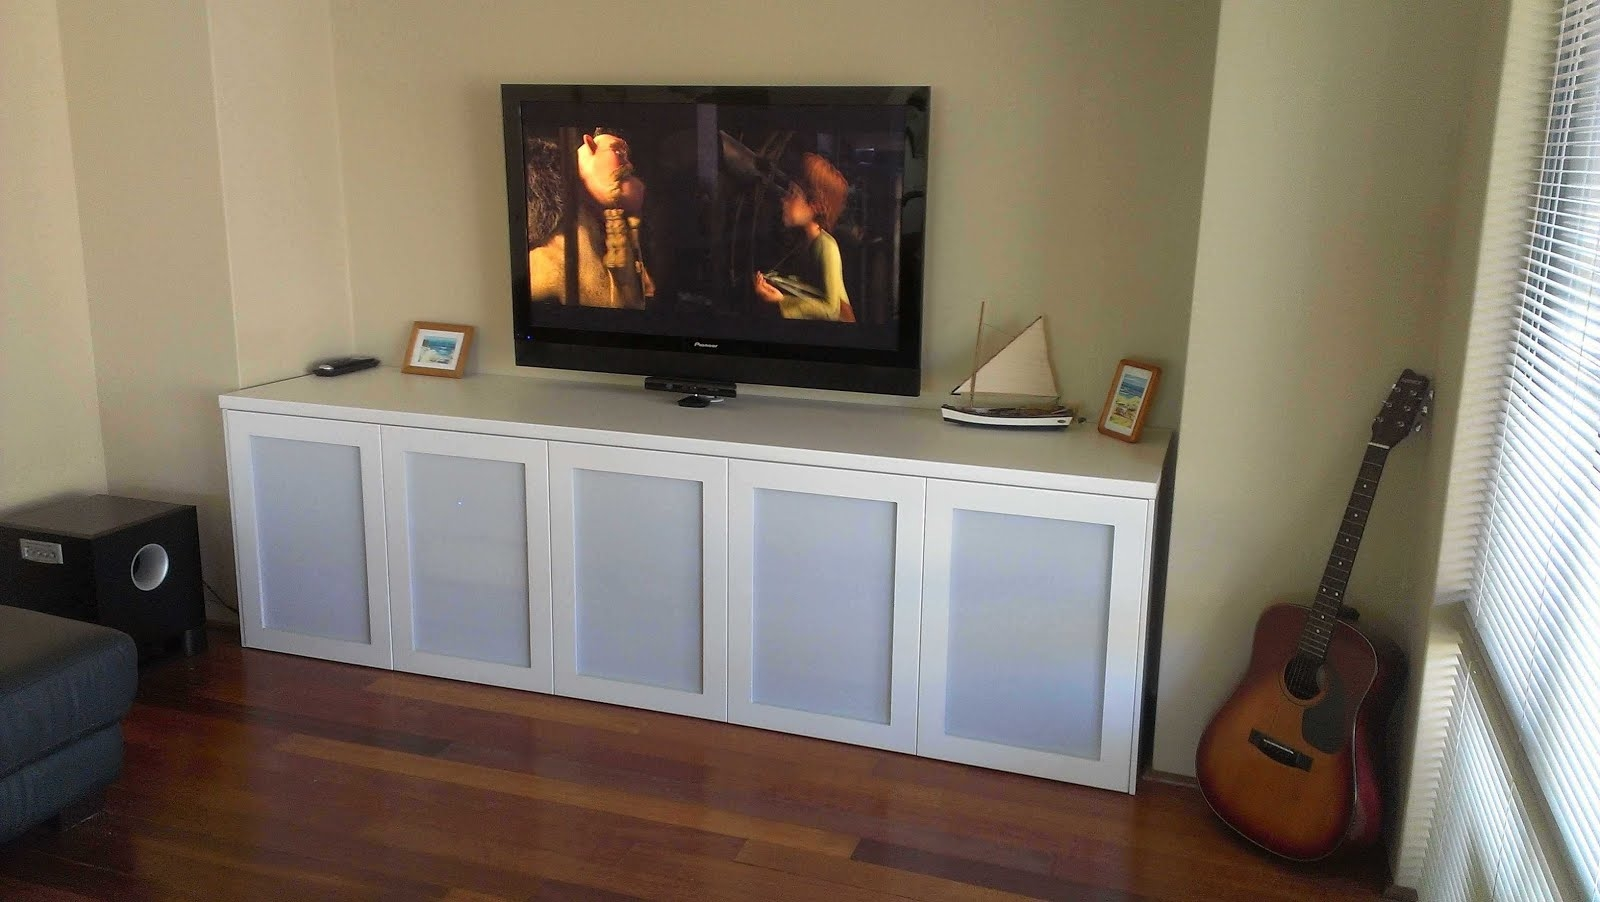 Carlyle Tall Large Tv Stand W371 48 Etc Pinterest Nice Tvs Inside Bespoke Tv Stand (#5 of 15)